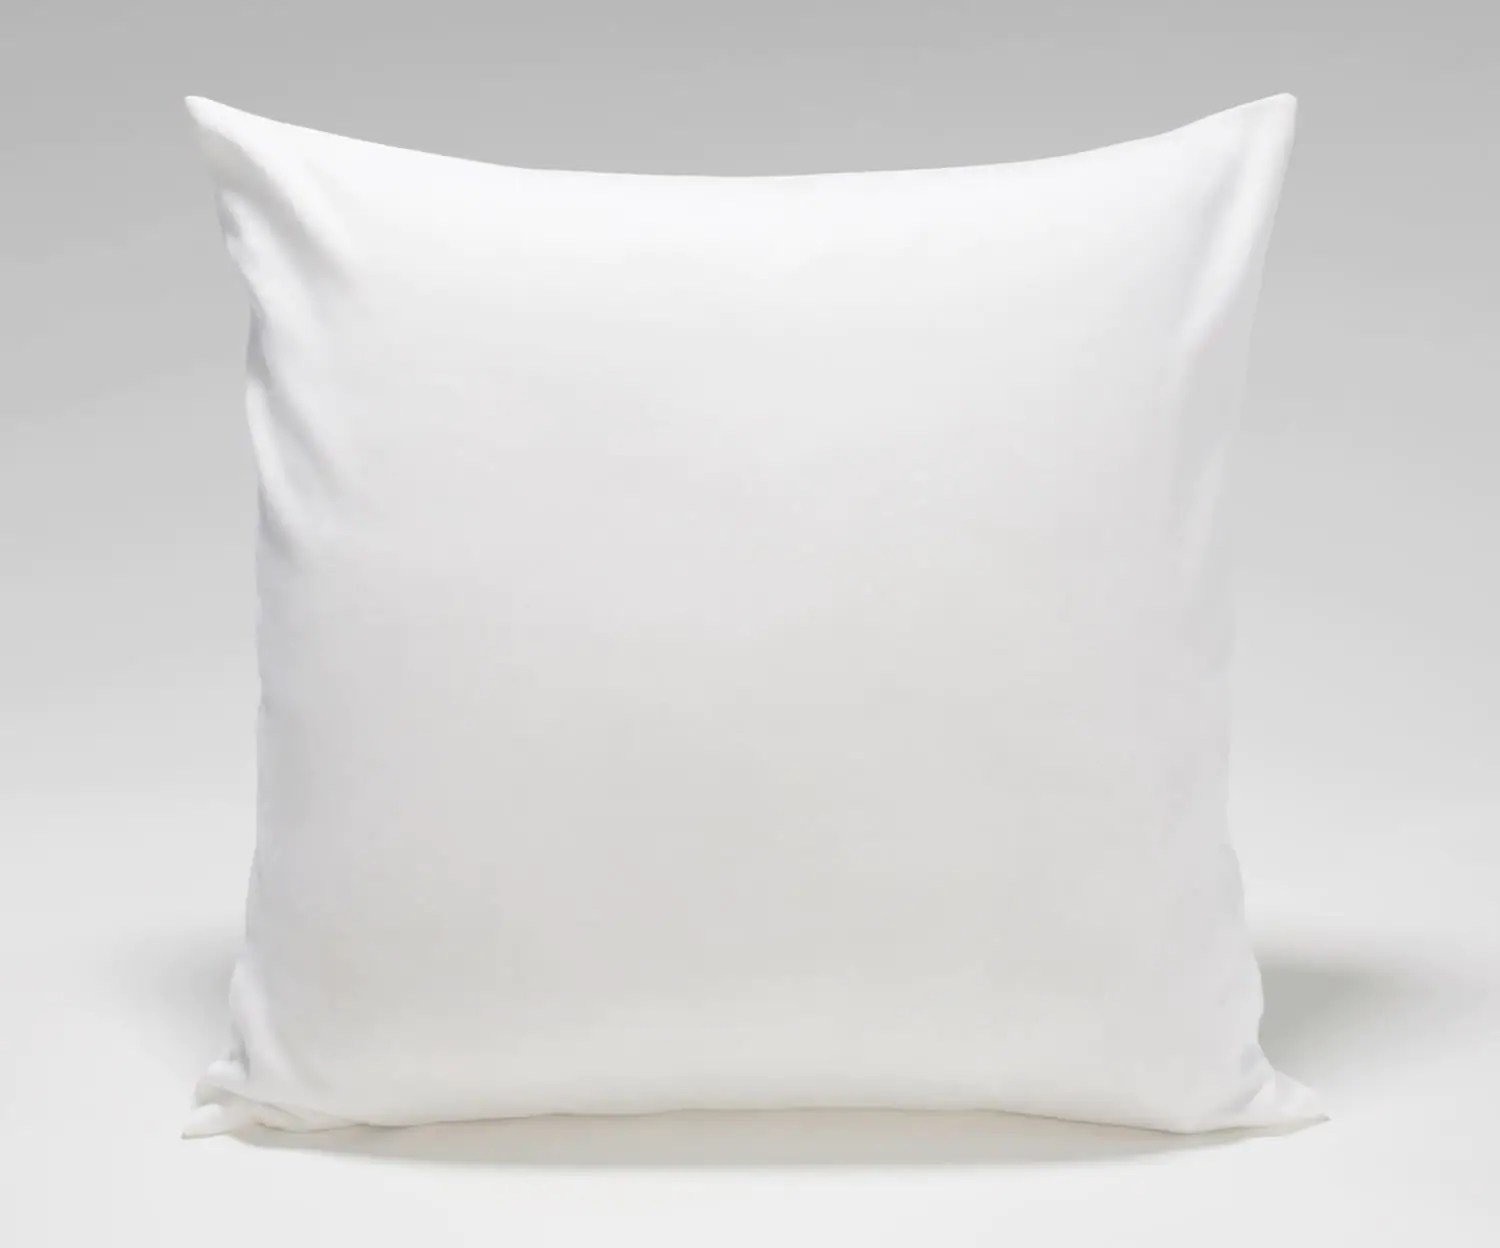 Solid White Cotton Pillow Cover In 3 Sizes BESTSELLER